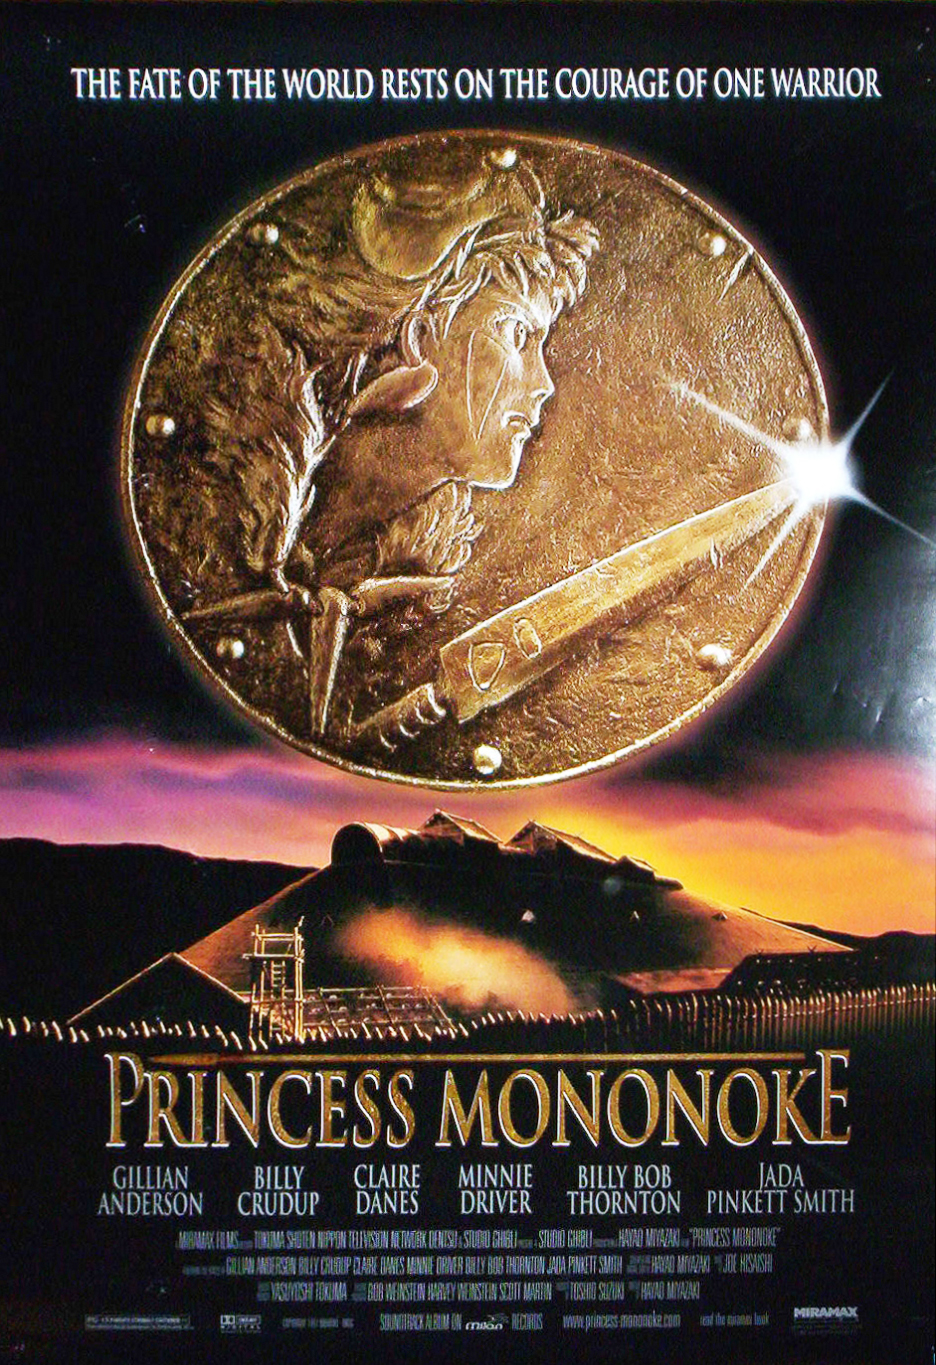 The Geeky Nerfherder: Movie Poster Art: Princess Mononoke (1997)